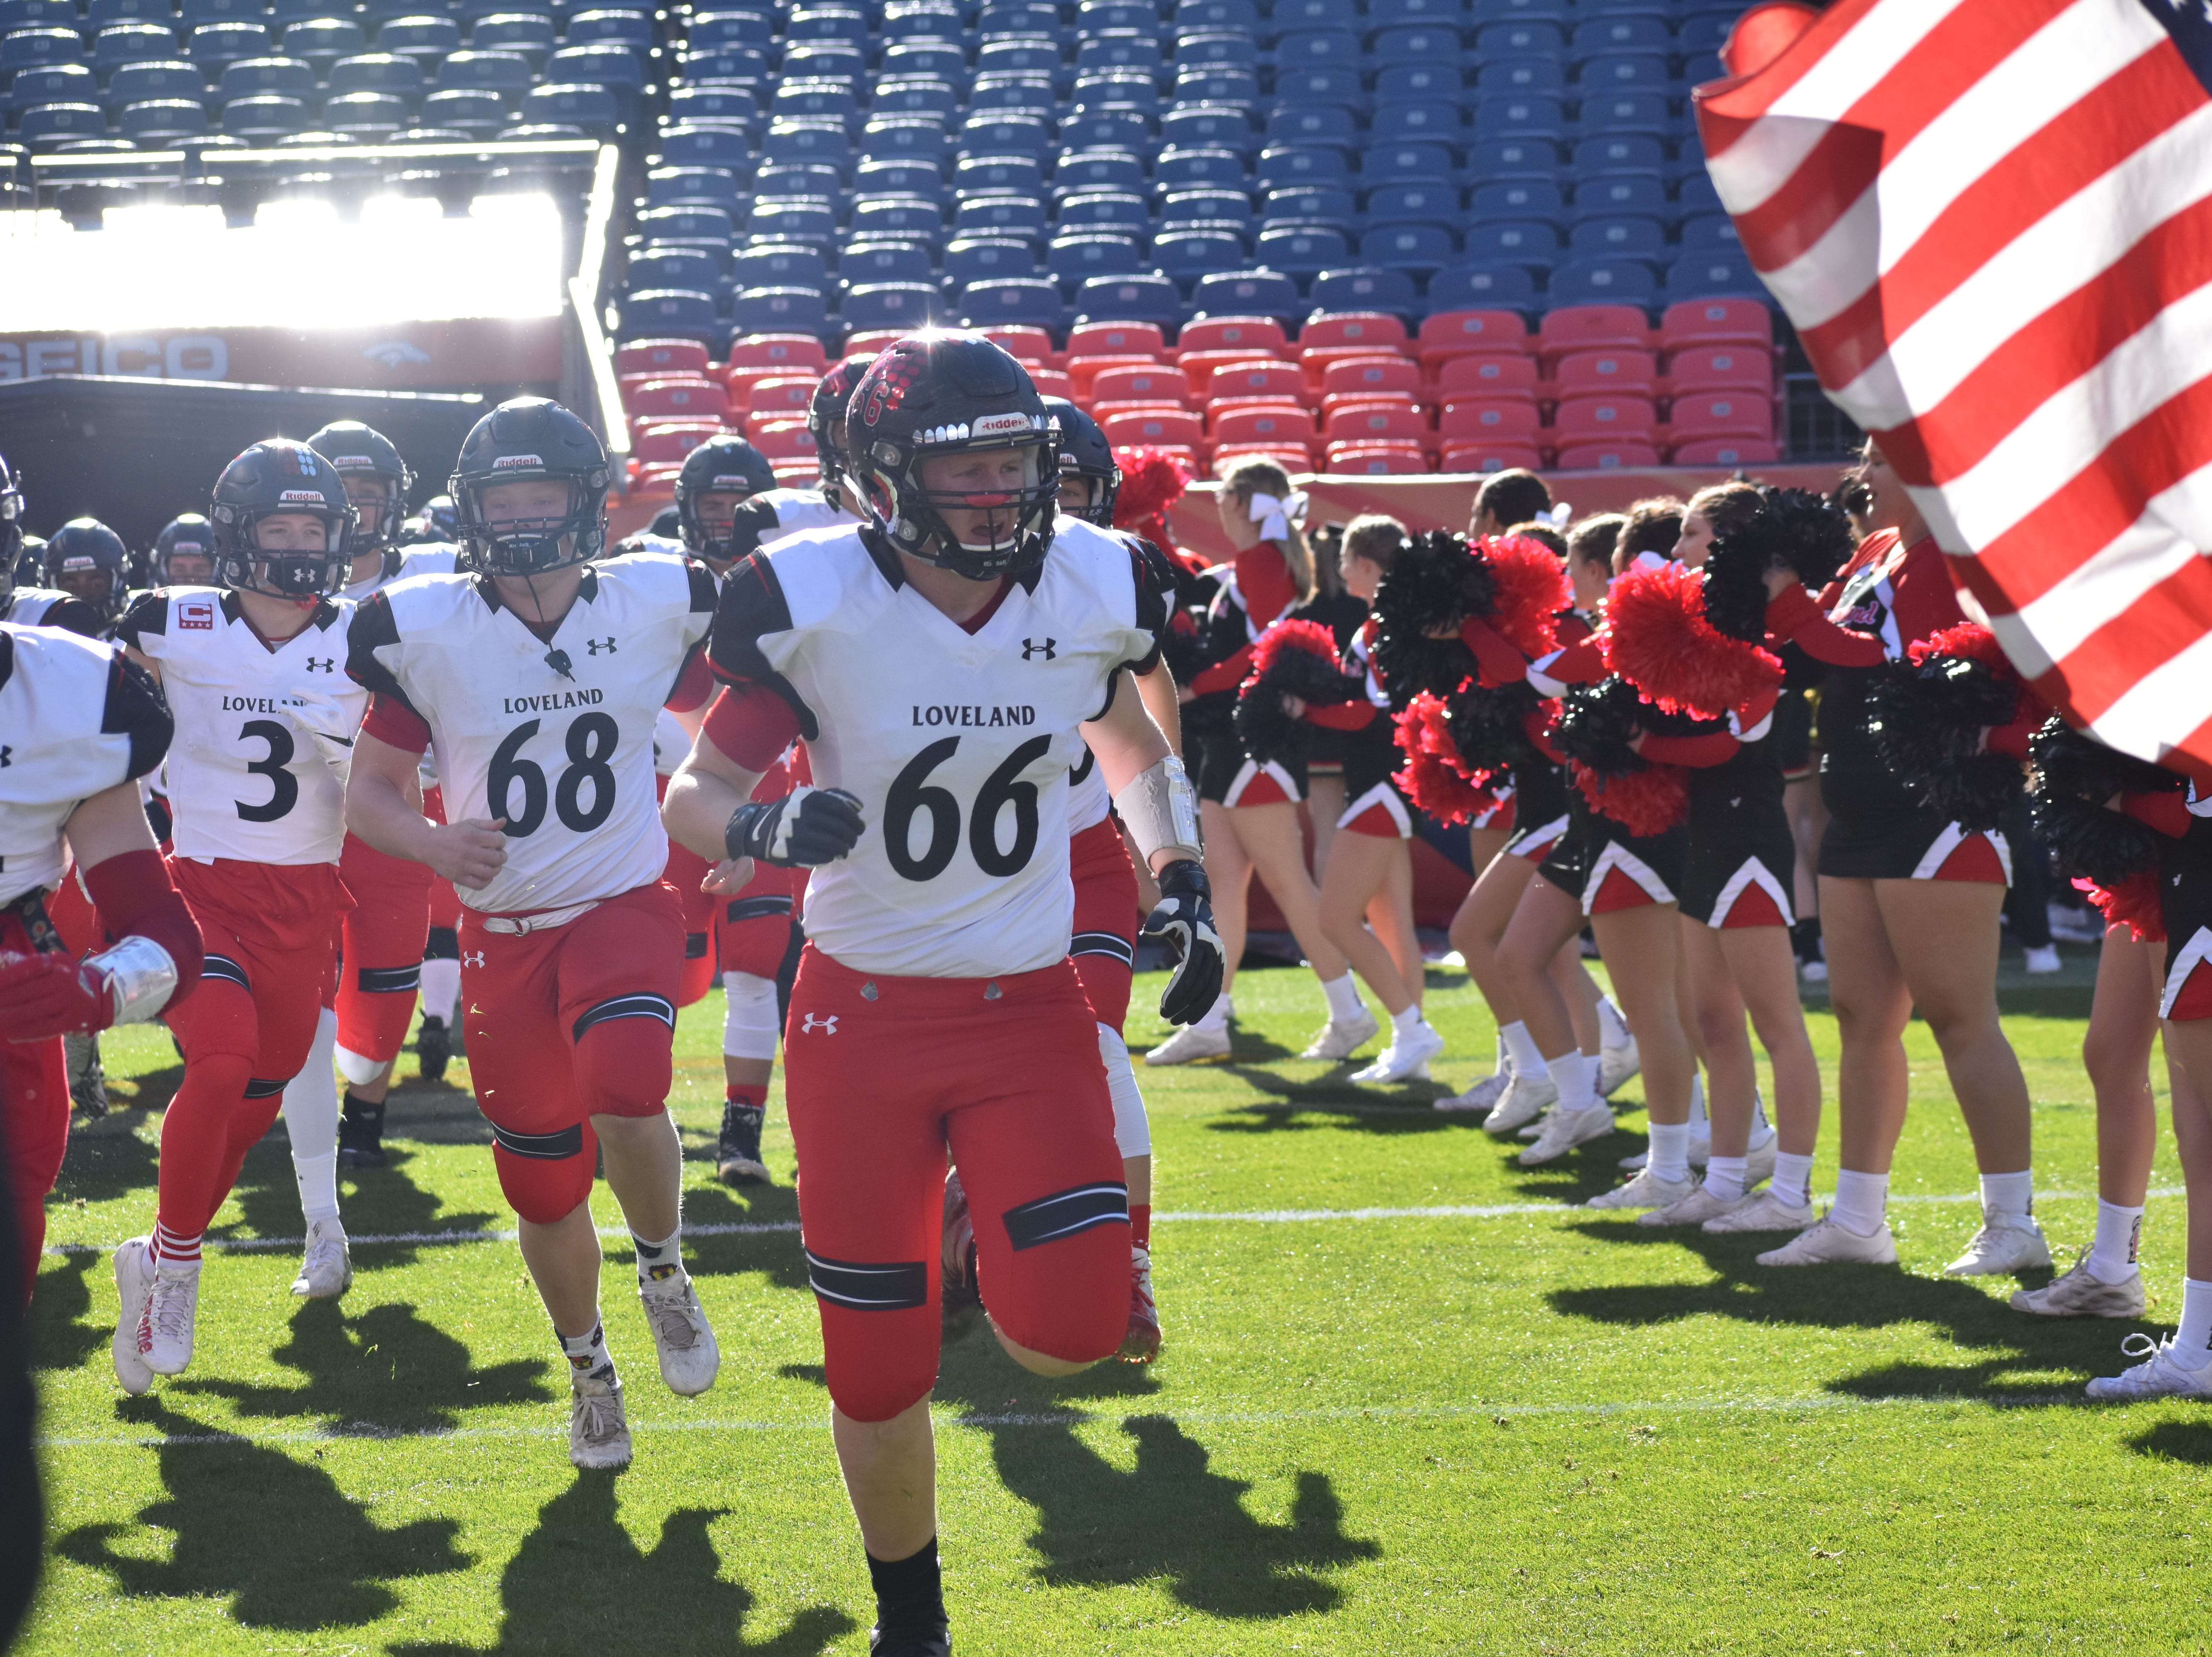 Loveland High football players take the field Saturday before the Class 4A state championship game at Broncos Stadium at Mile High in Denver.